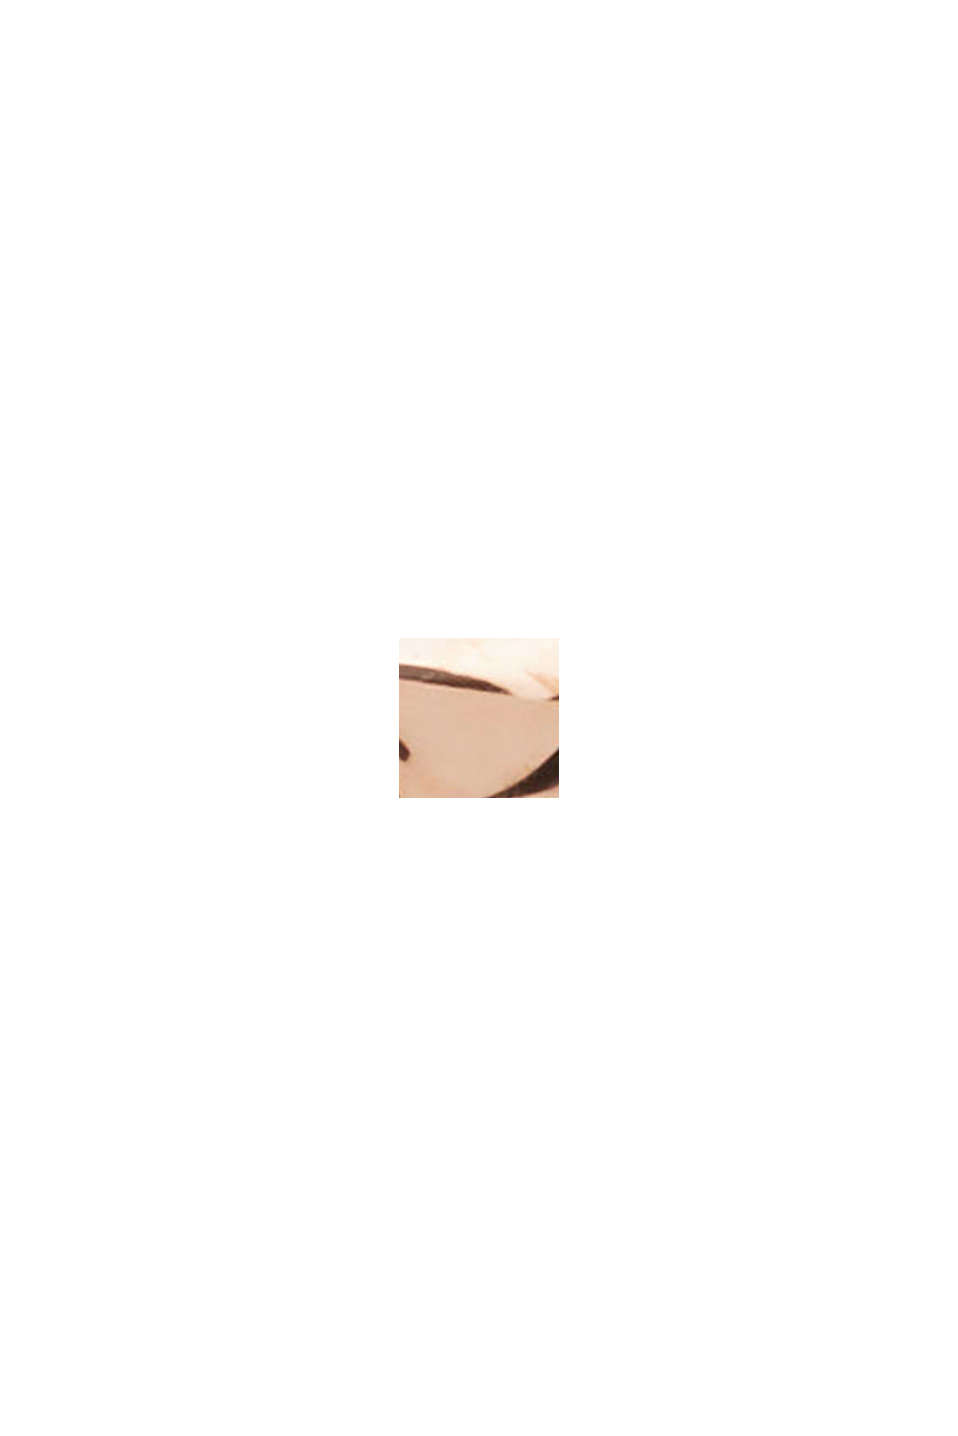 Rose gold ring with zirconia, made sterling silver, ROSEGOLD, swatch